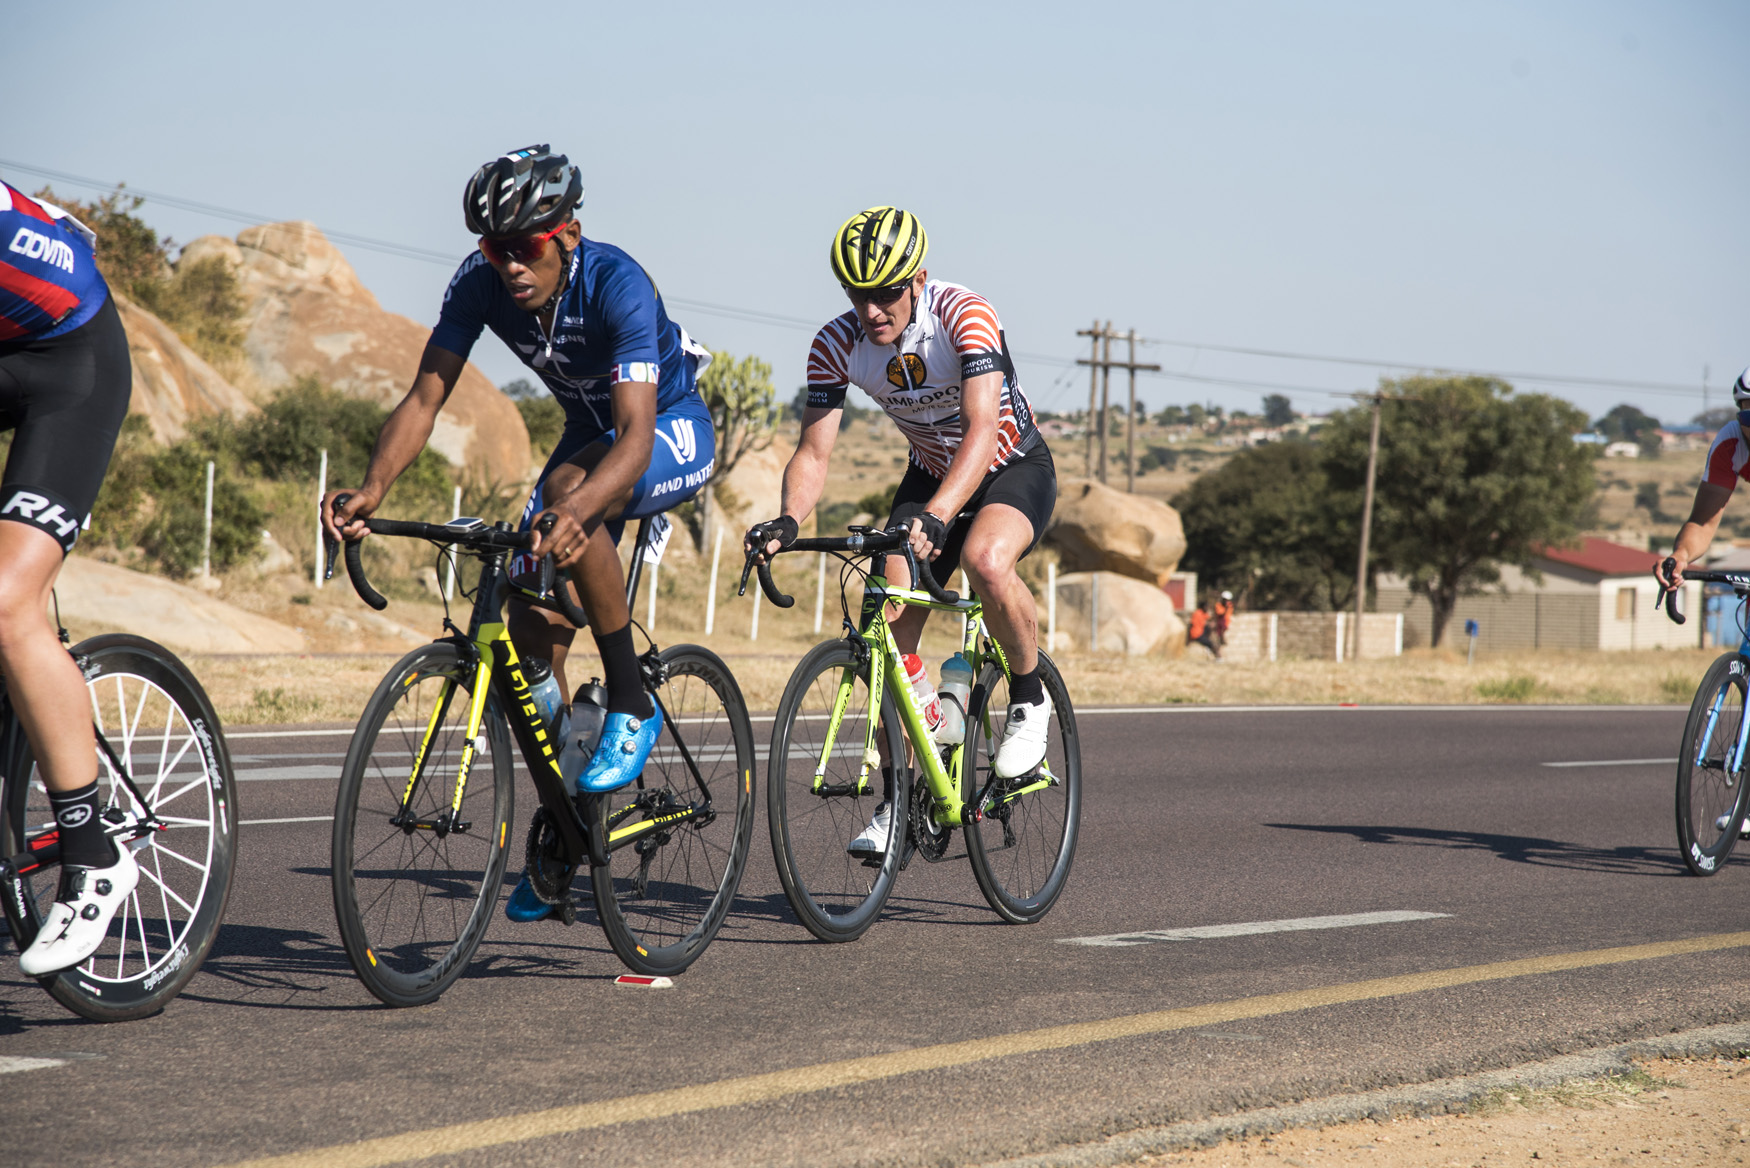 Alan Gordon from the Limpopo provincial team recovered from the crash to join the peloton from Polokwane to Tzaneen on Stage 2 of the 2019 Tour de Limpopo (UCI 2.2) from 14-18 May © Tour de Limpopo/Andrew Mc Fadden